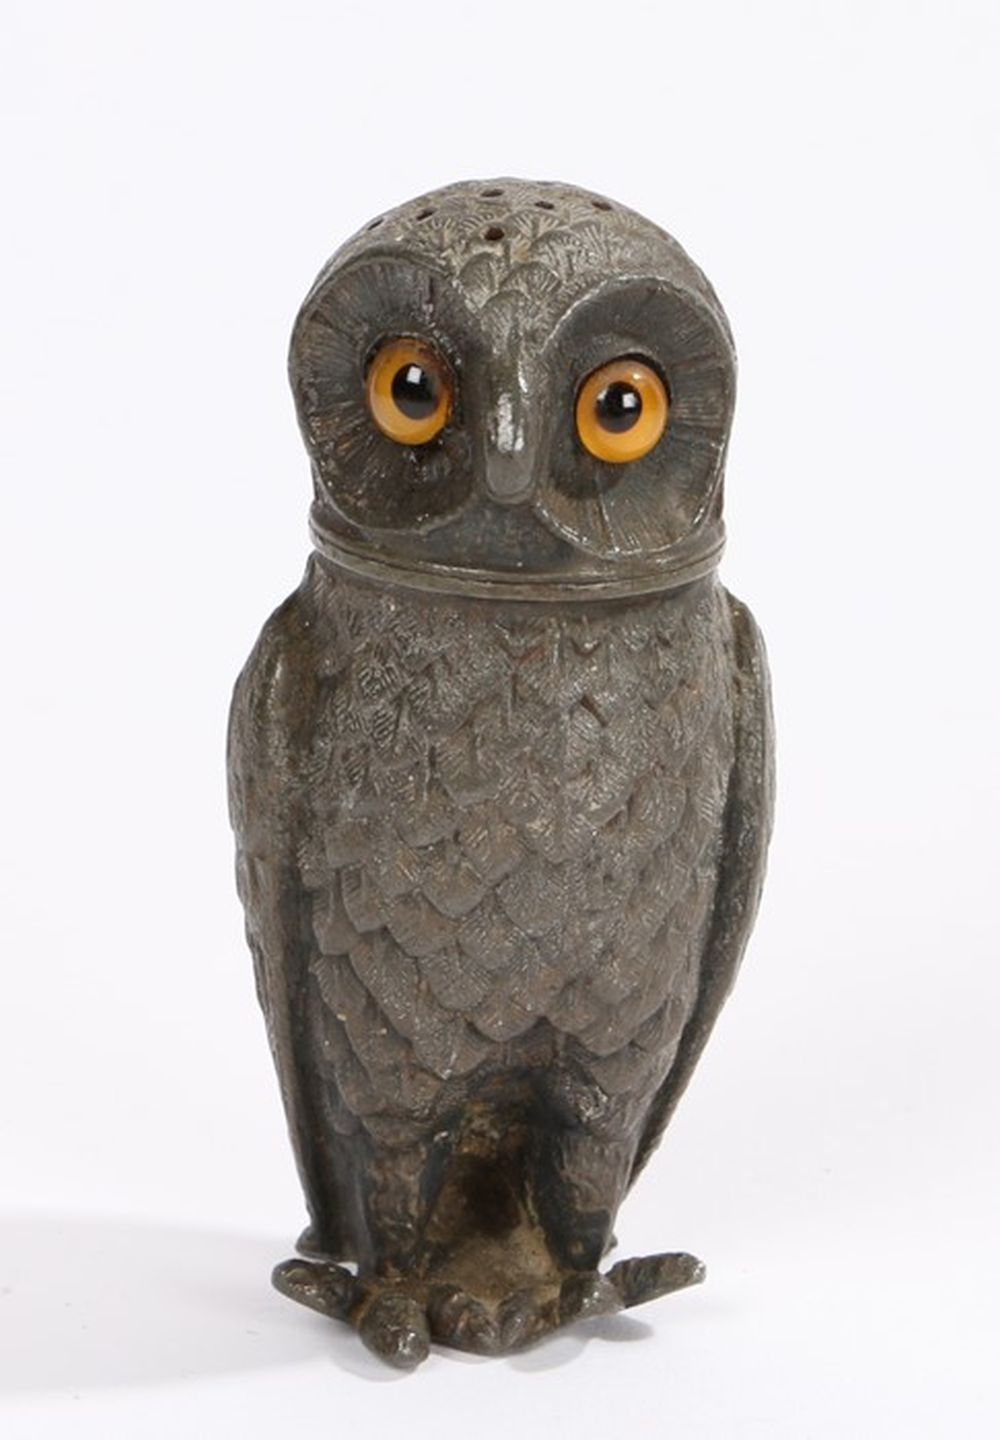 White metal pepperette in the form of an owl, with orange eyes to the removable cap, 8cm high